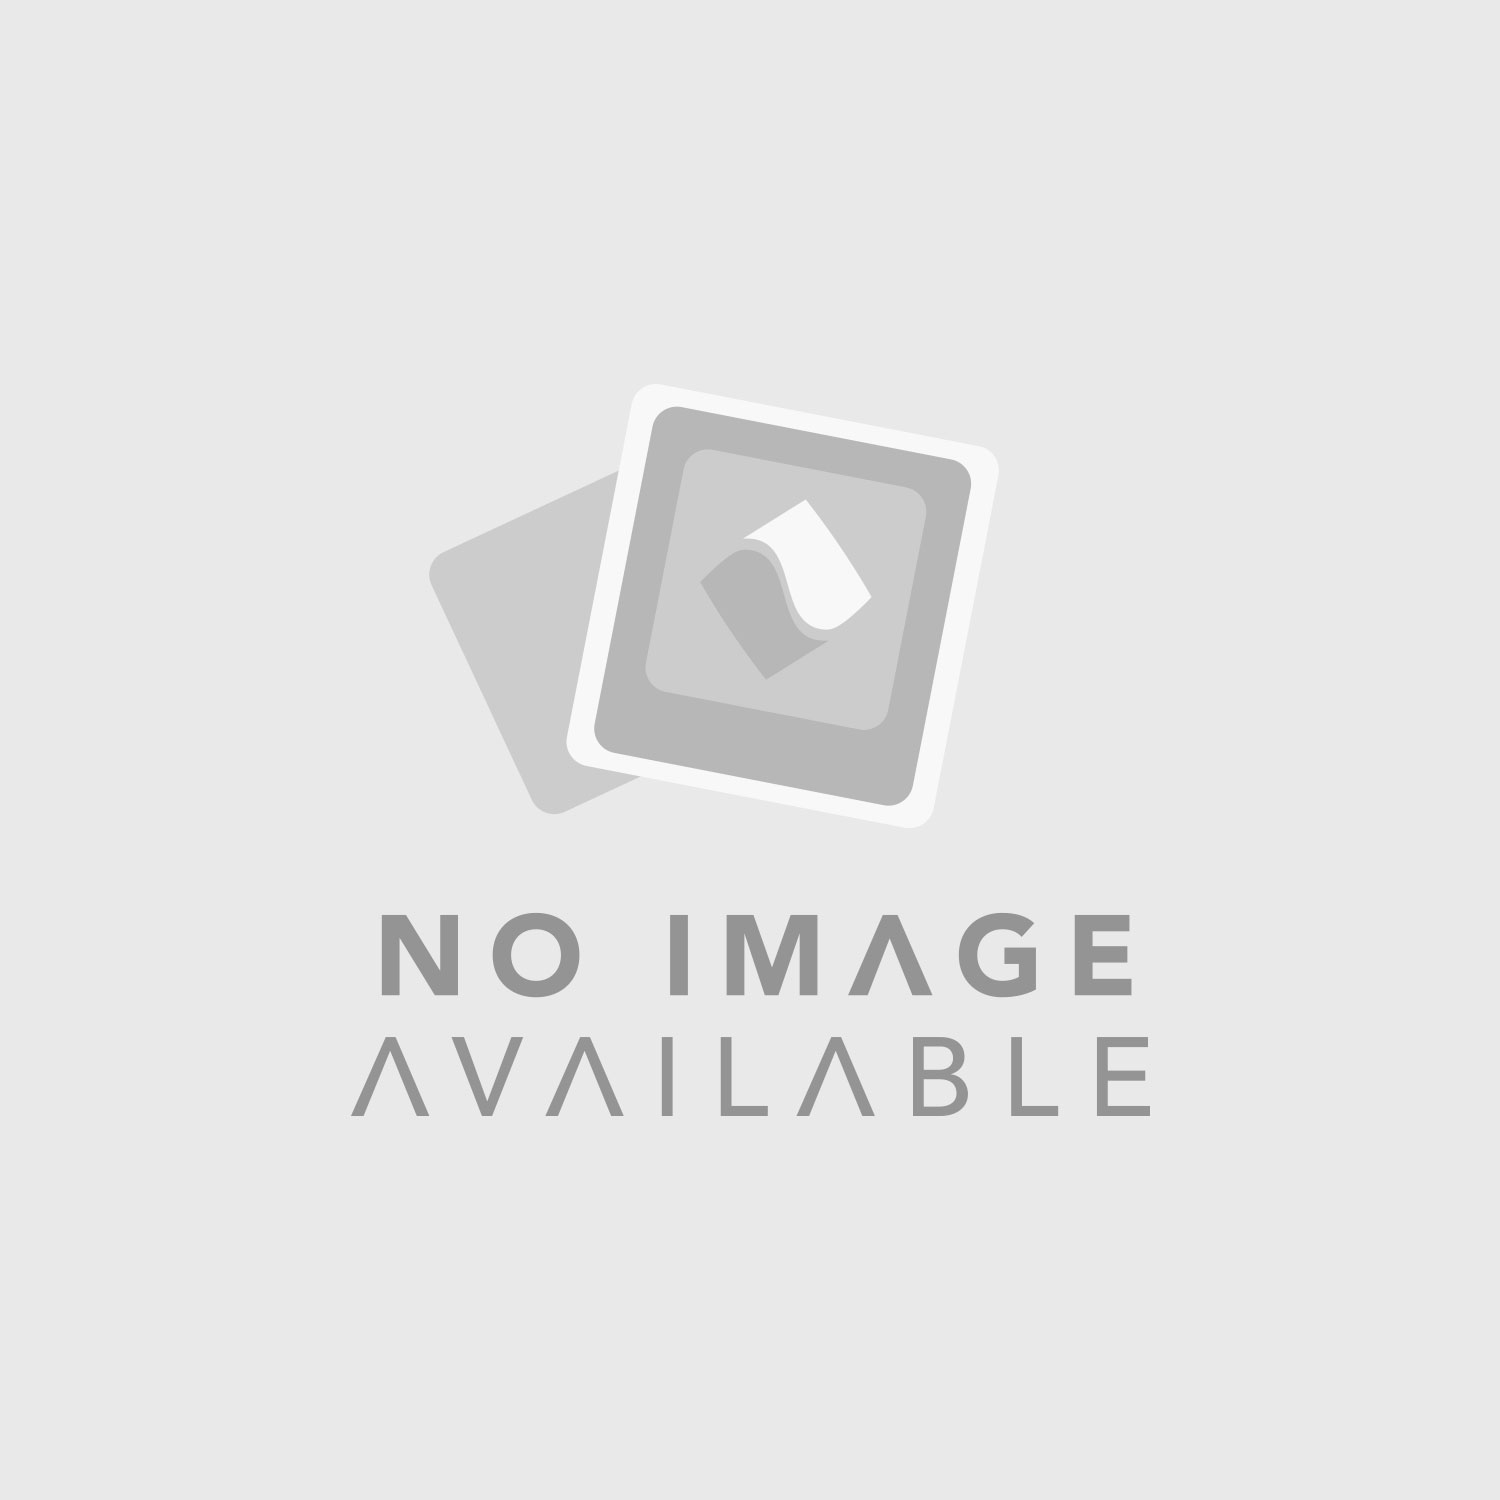 SKB 5FC-1813-7 Replacement Cubed Foam for 3i-1813-7-Series Cases